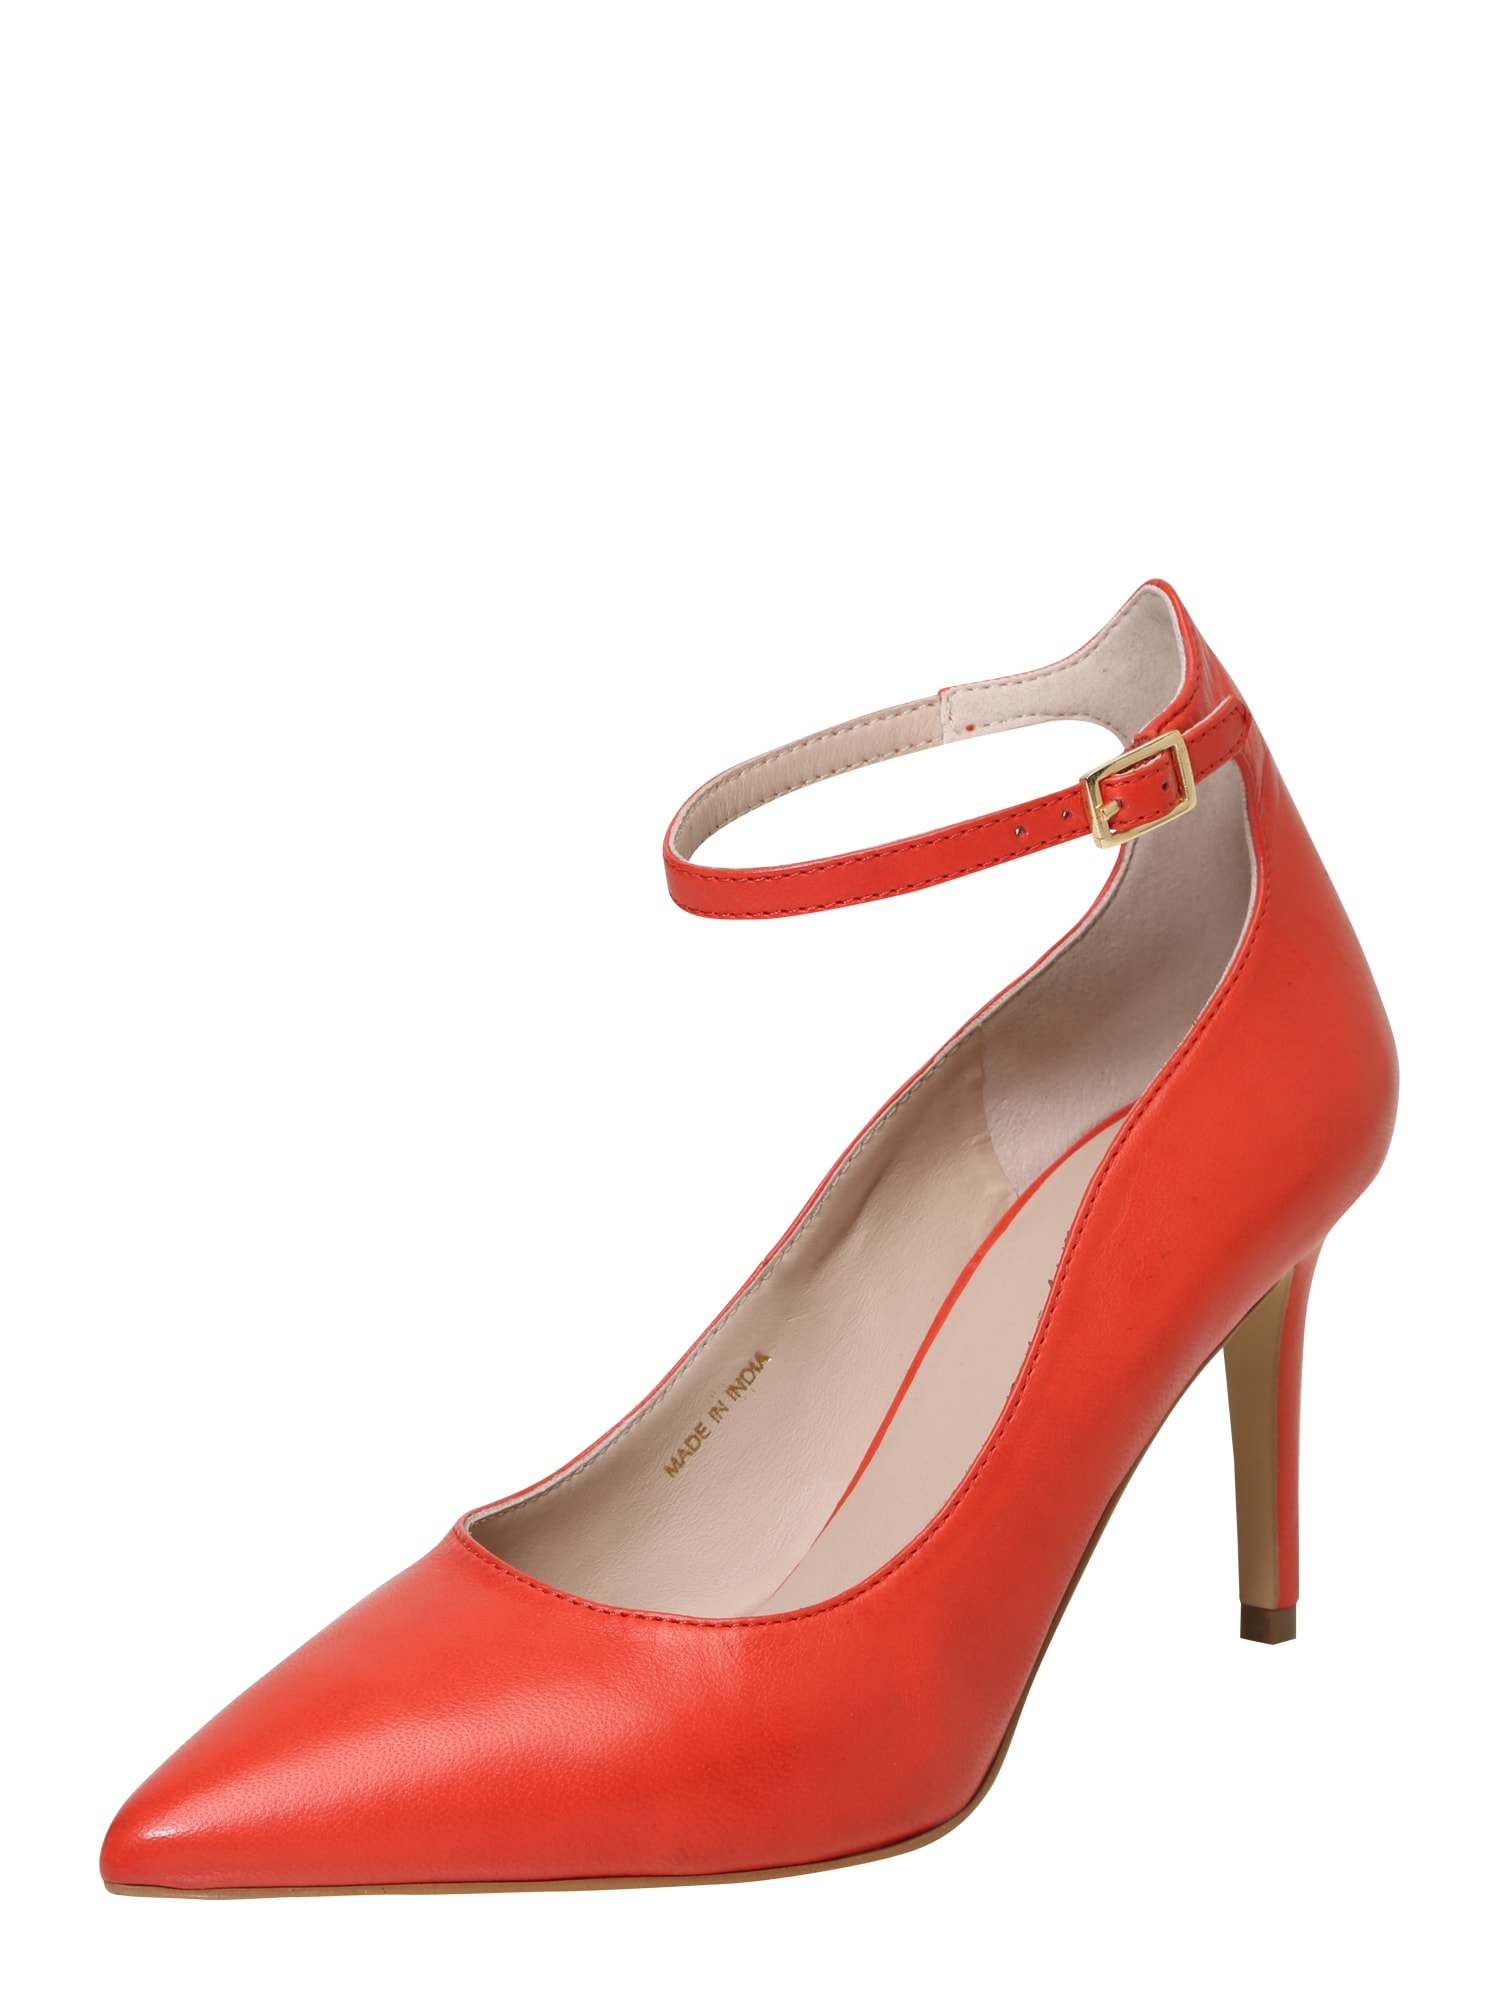 High Heel-Pumps 'Adele' | Schuhe > High Heels | ABOUT YOU